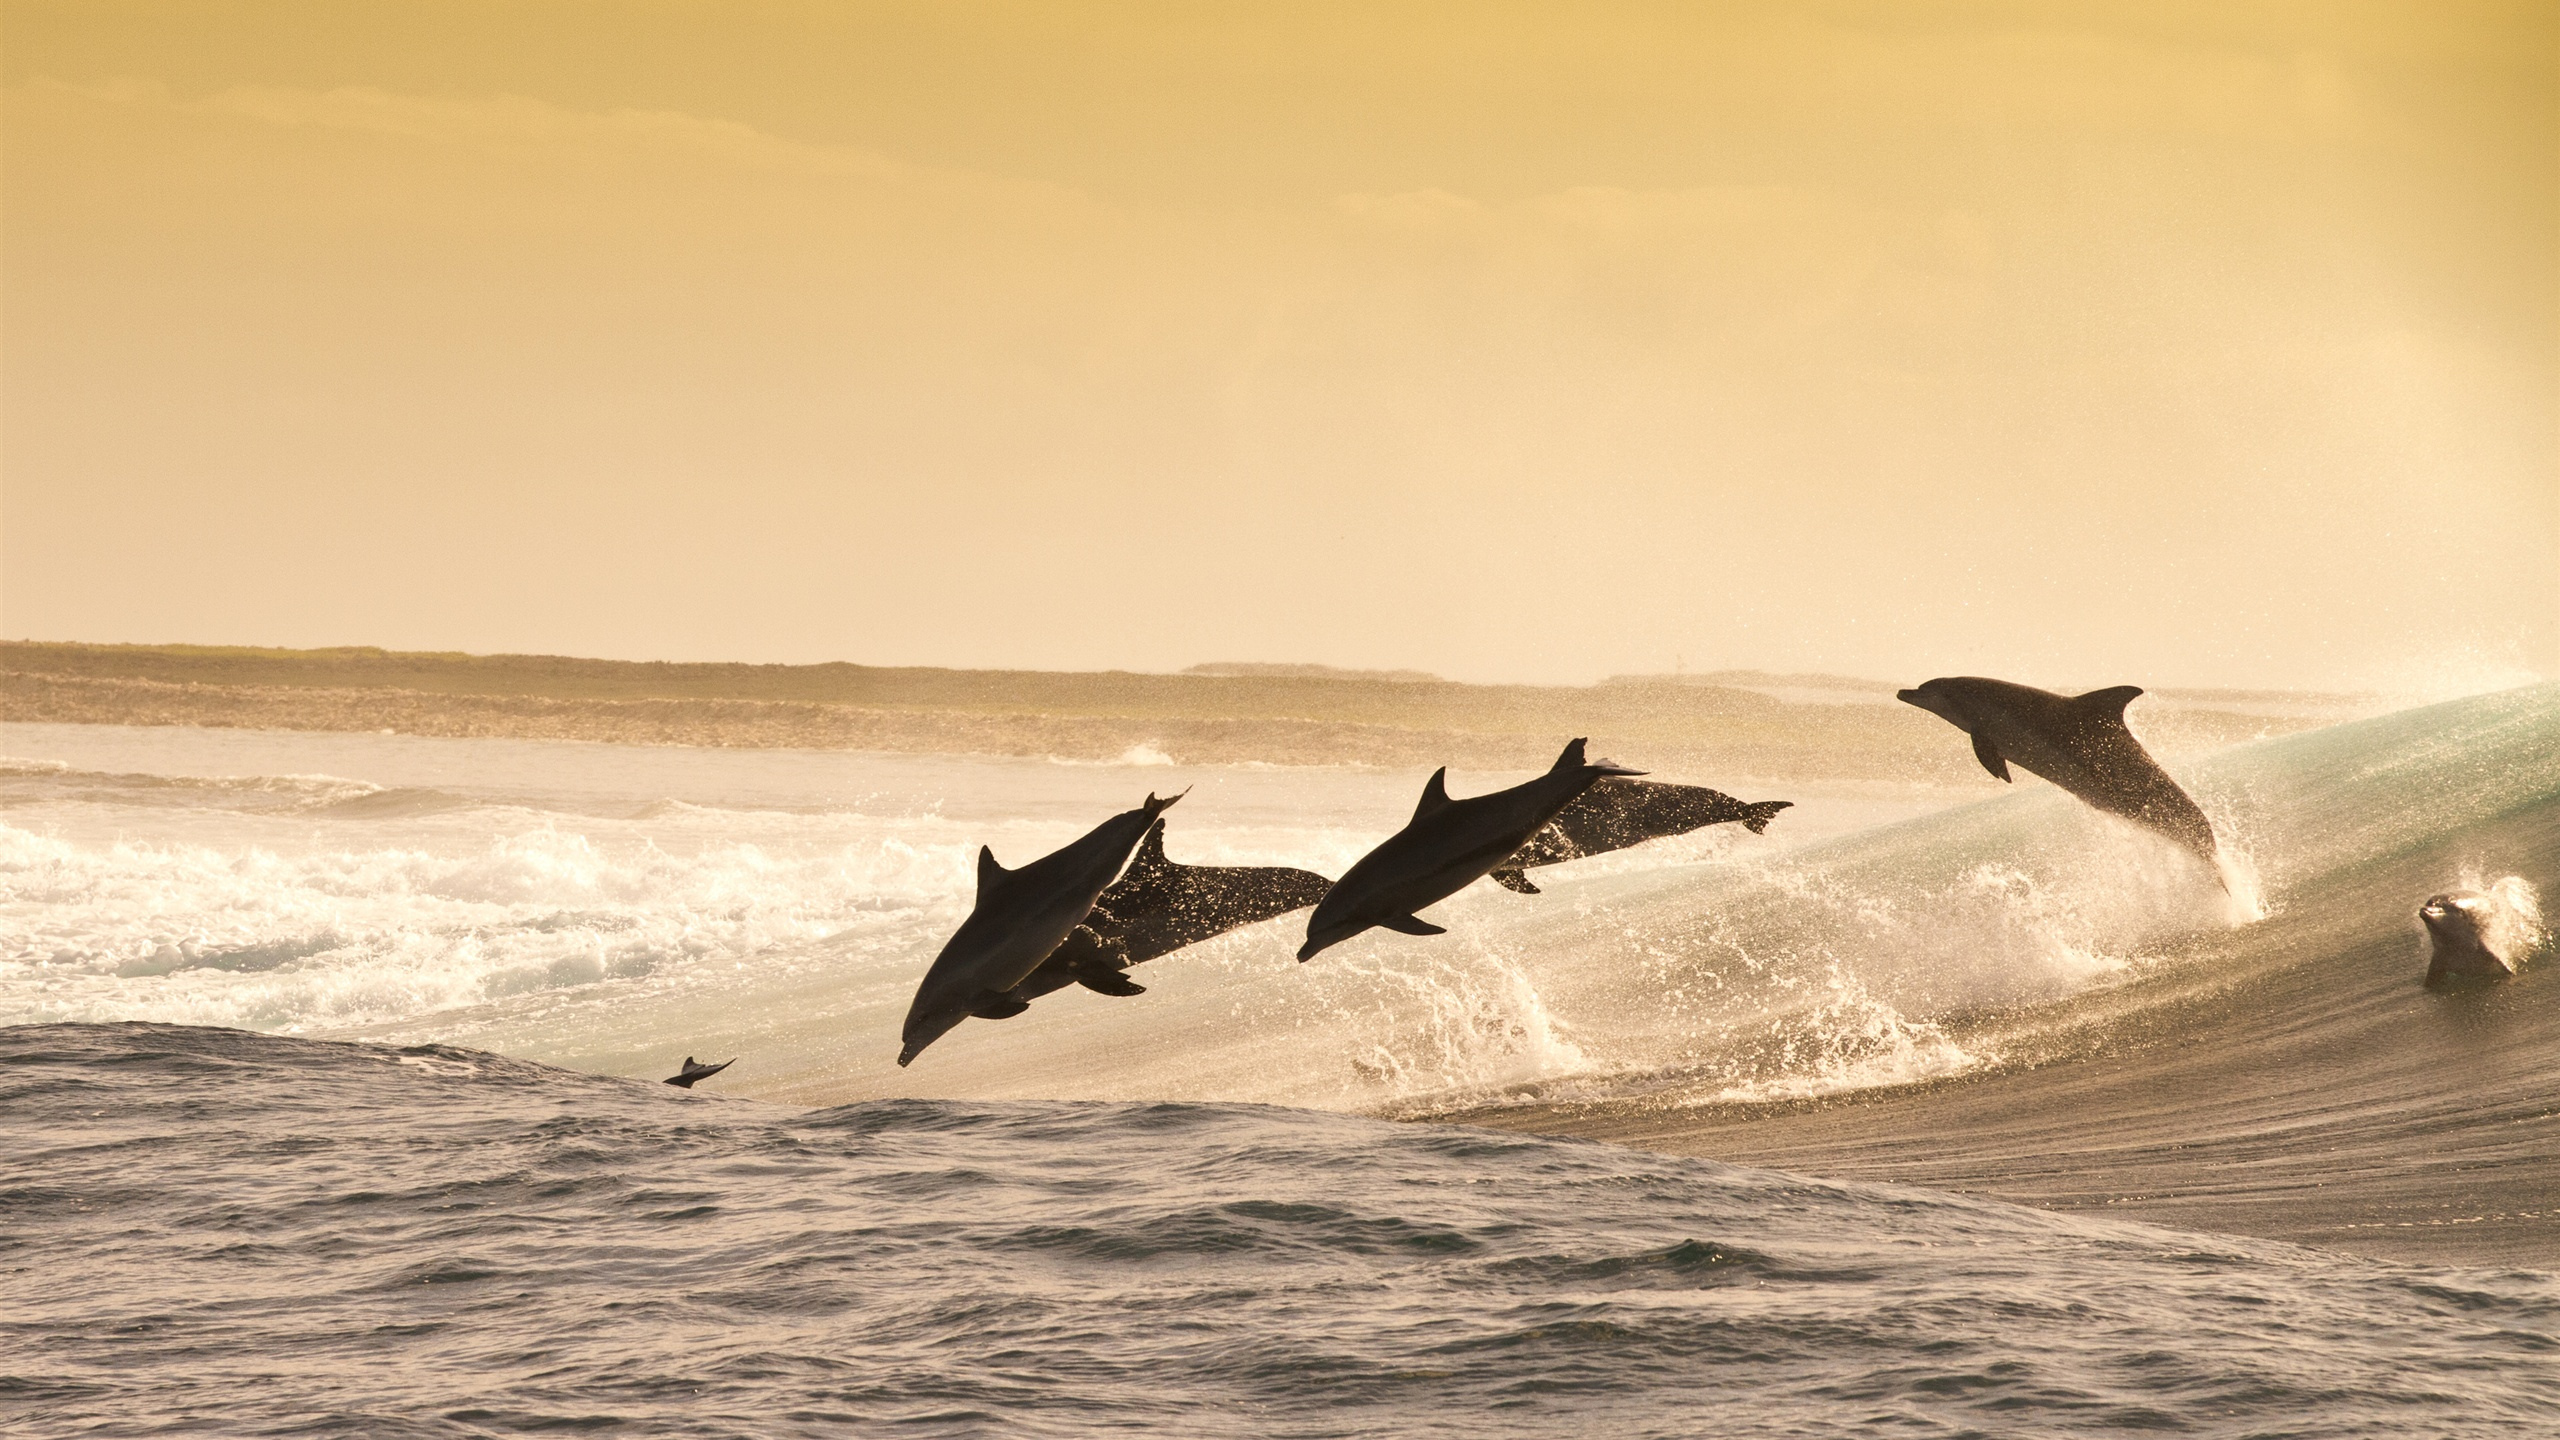 Wallpaper Dolphins Jumping At Sunset Sea Water Splash 3840x2160 UHD